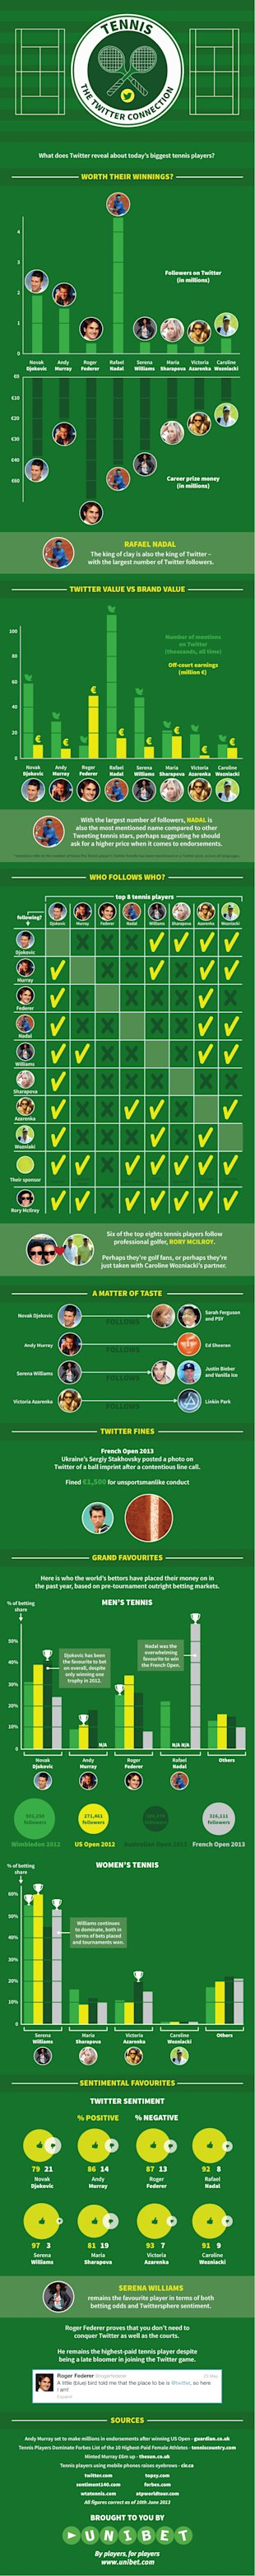 Tennis   The Twitter Connection [Infographic] image tennis the twitter connection